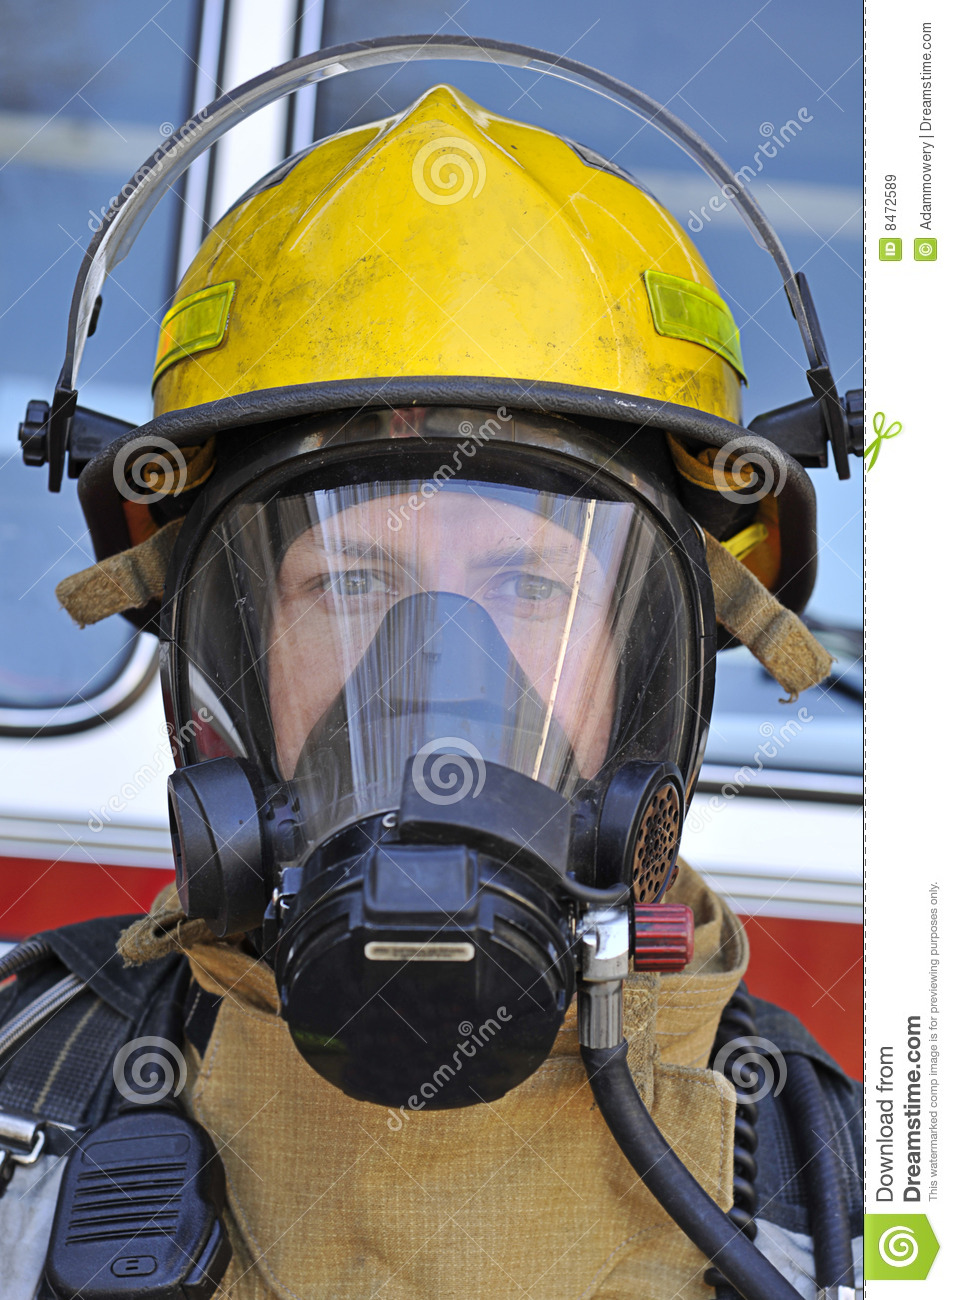 Firefighter In Air Mask Royalty Free Stock Images - Image